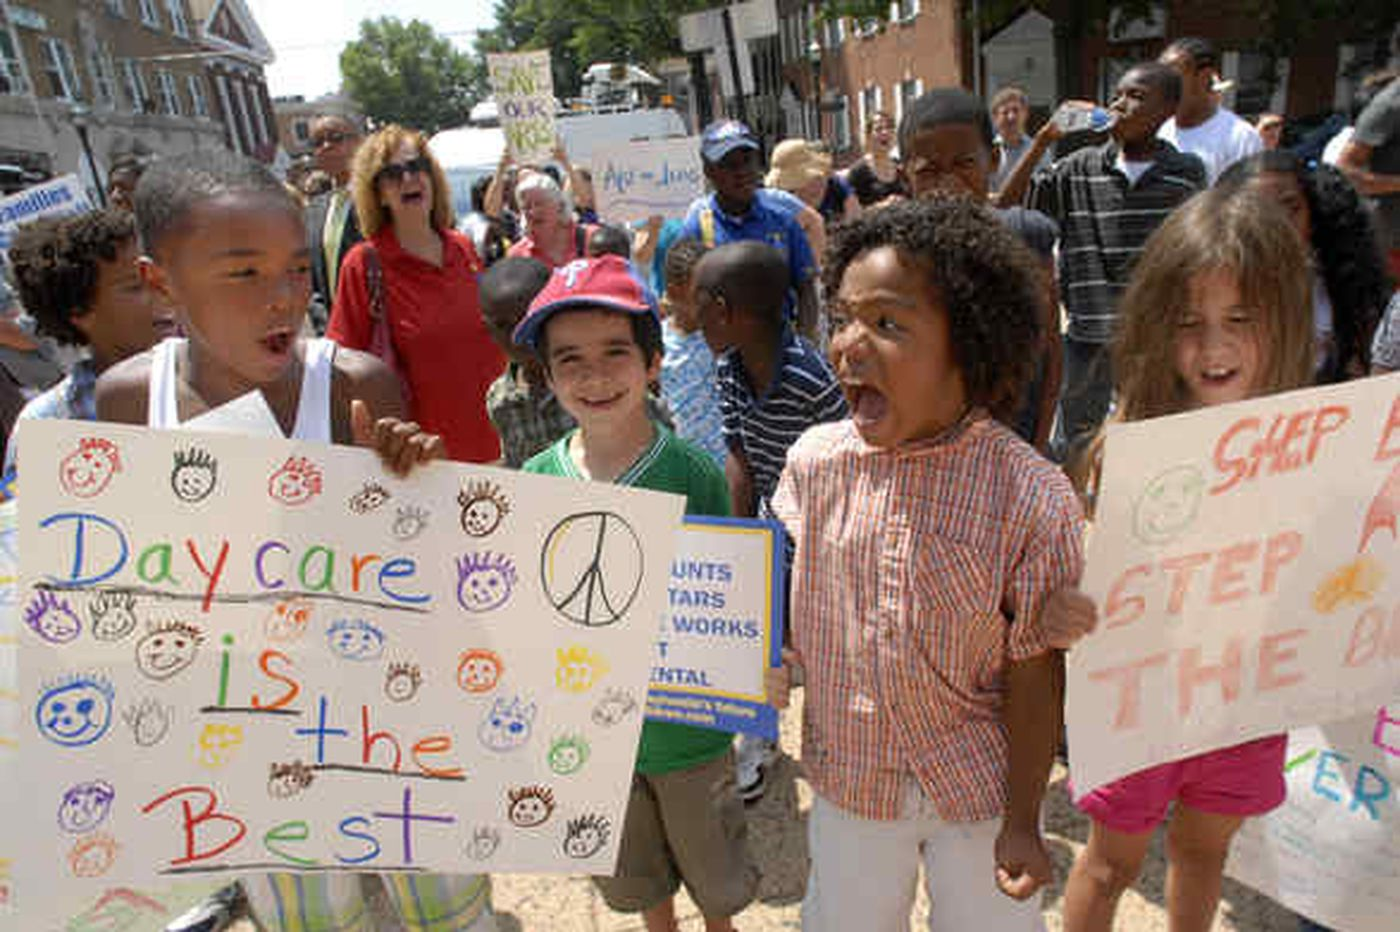 Protesters decry possible Pa. budget cuts